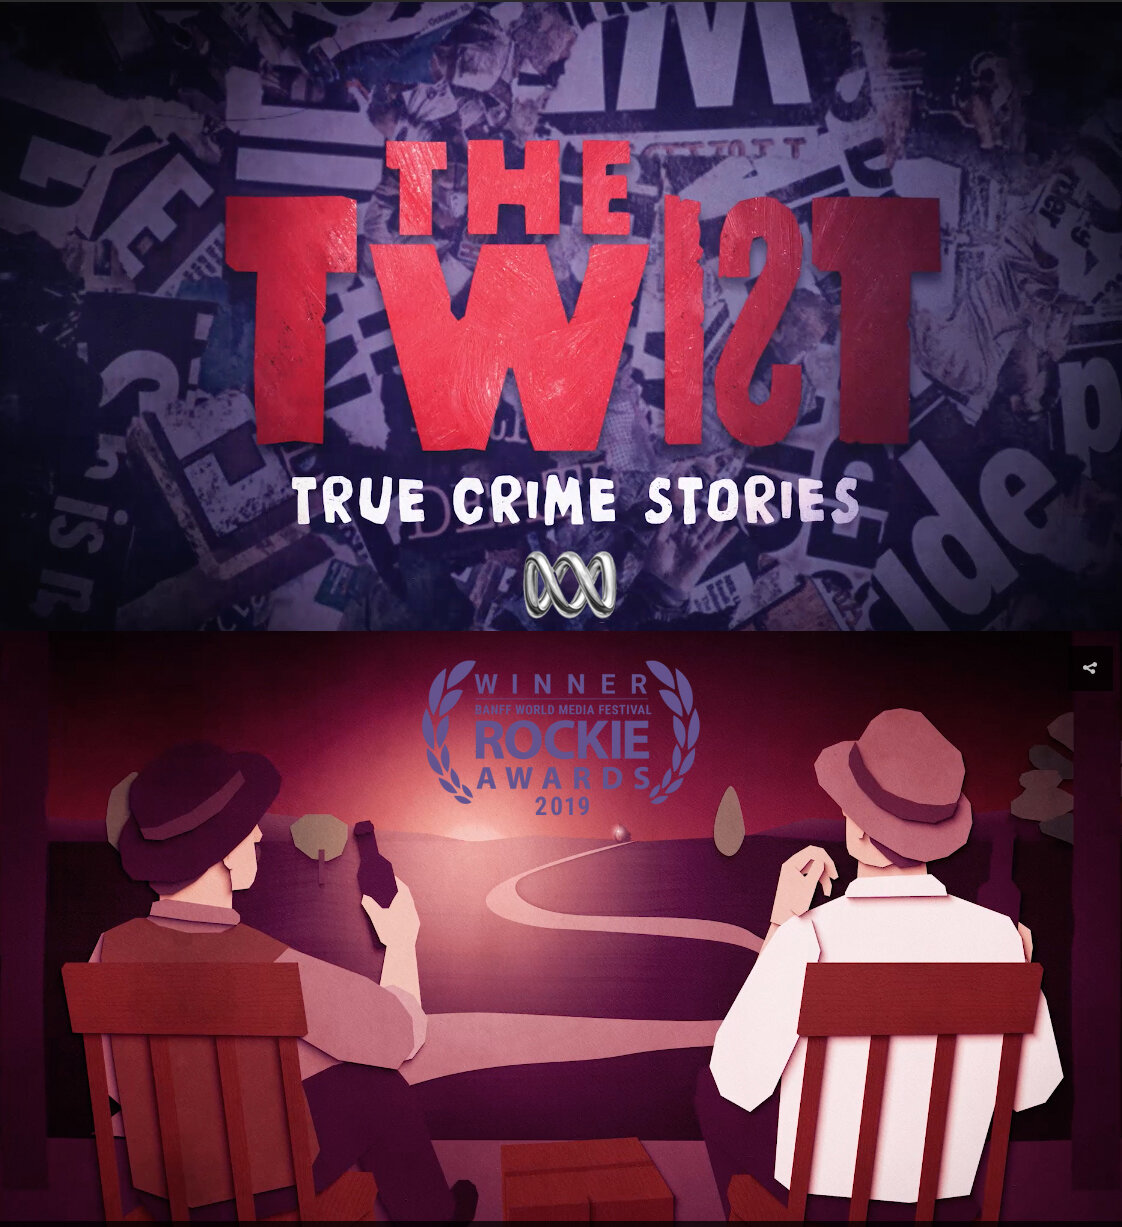 The Twist: Animation Series  - WRITER/ RESEARCHERThe award-winning animated series that brings to life some of Australia's most intriguing crime stories. These were crimes of passion, old-fashioned gangland homicides and mysteries that captivated the entire nation.15 Episode SeriesWinner of the 2019 Banff World Media Festival ROCKIE Award for Best Animation Series.